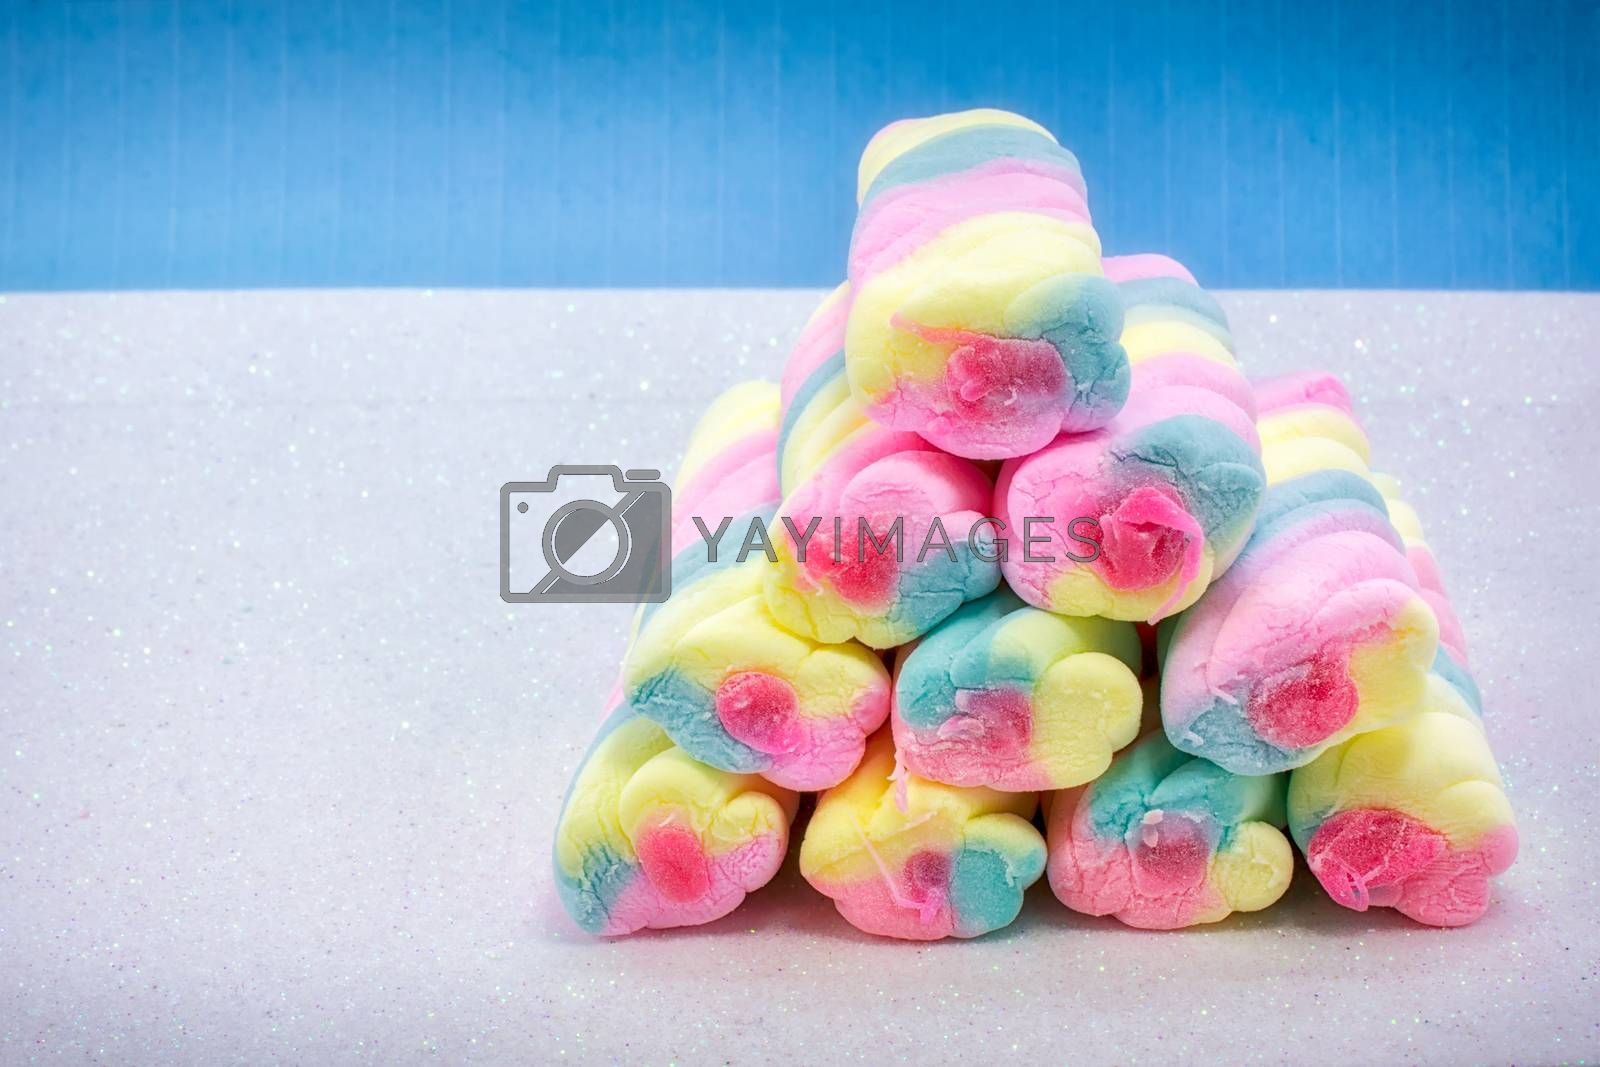 Pile of Colorful marshmallow with Sweet Fillings